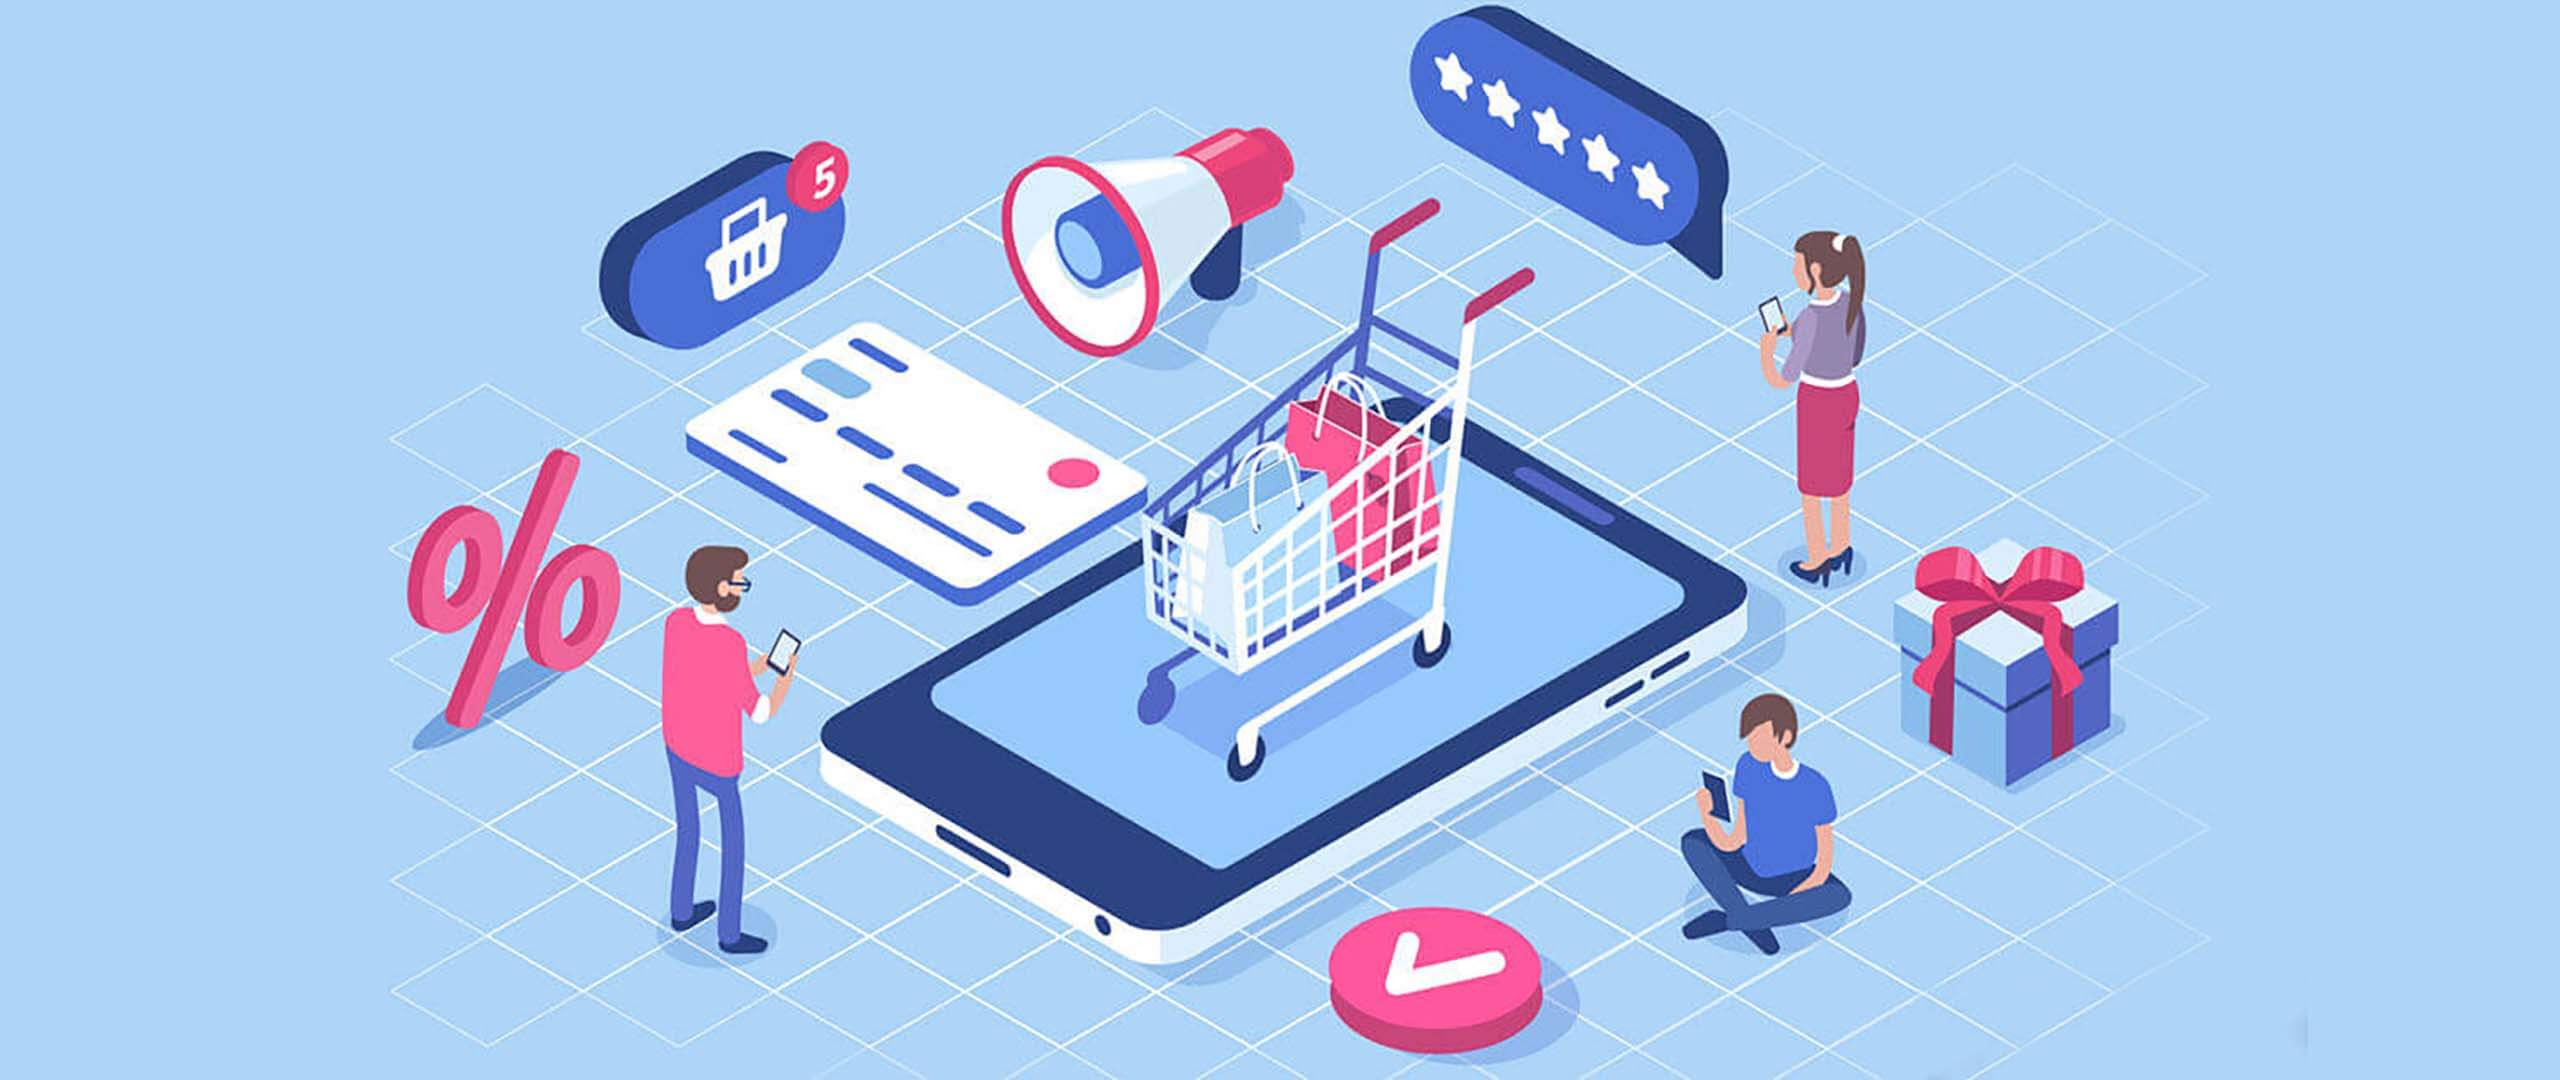 Social Commerce: Don't Put All Your Eggs In One Basket